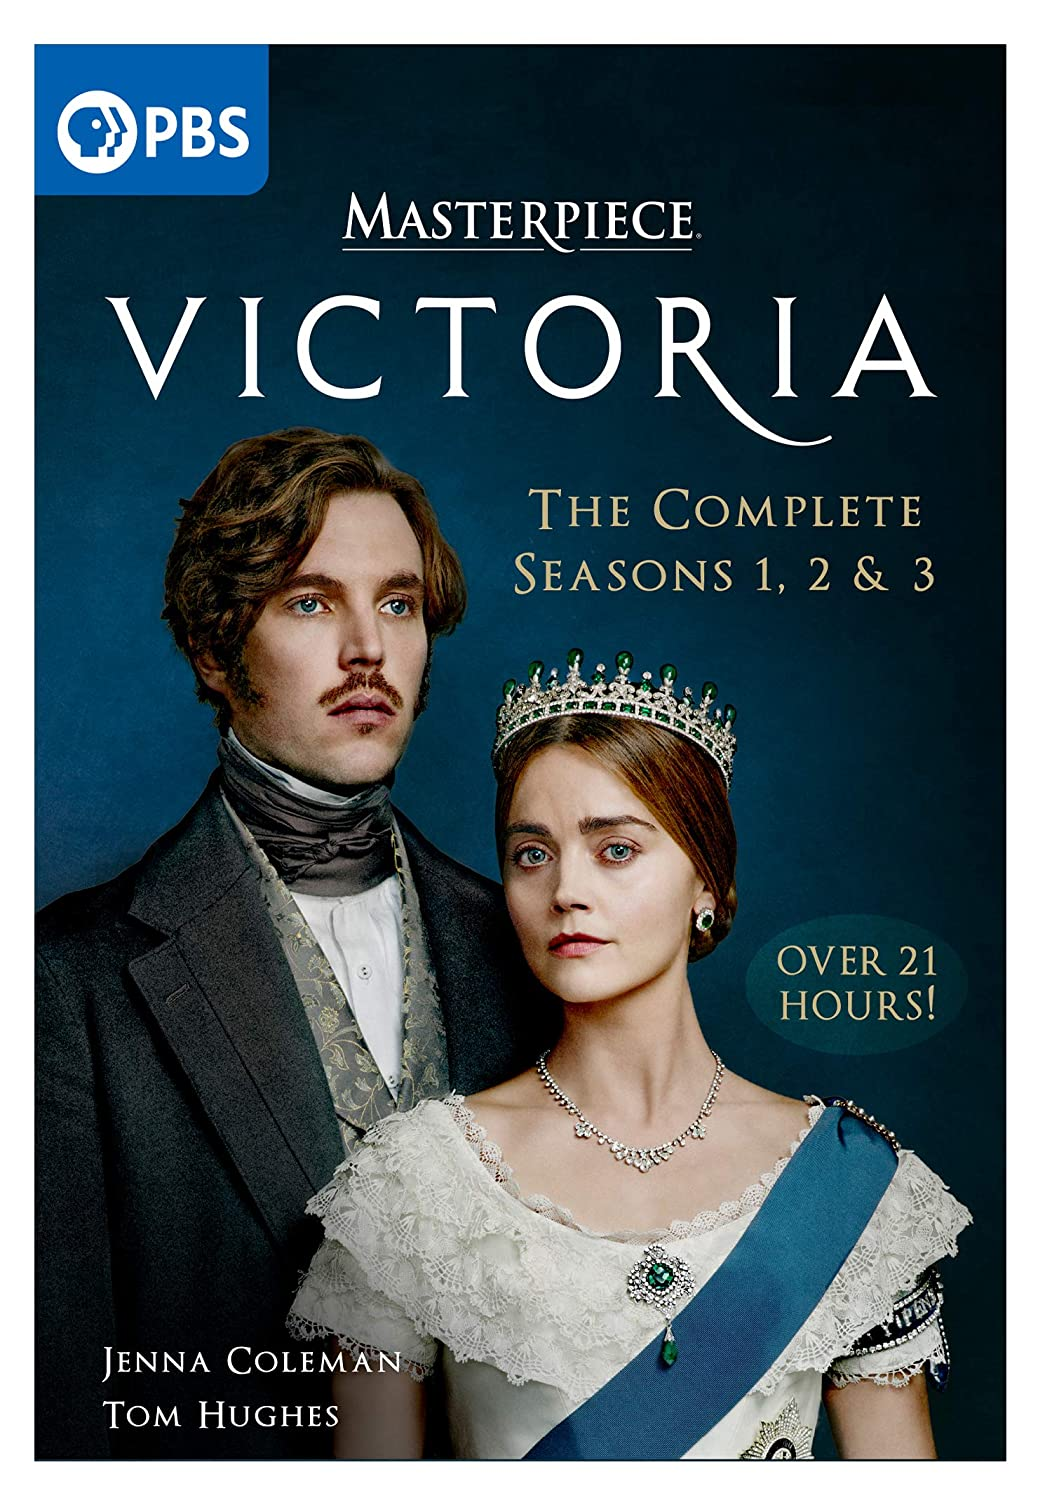 Victoria: The Complete Seasons. She won't miss out on the hit series.